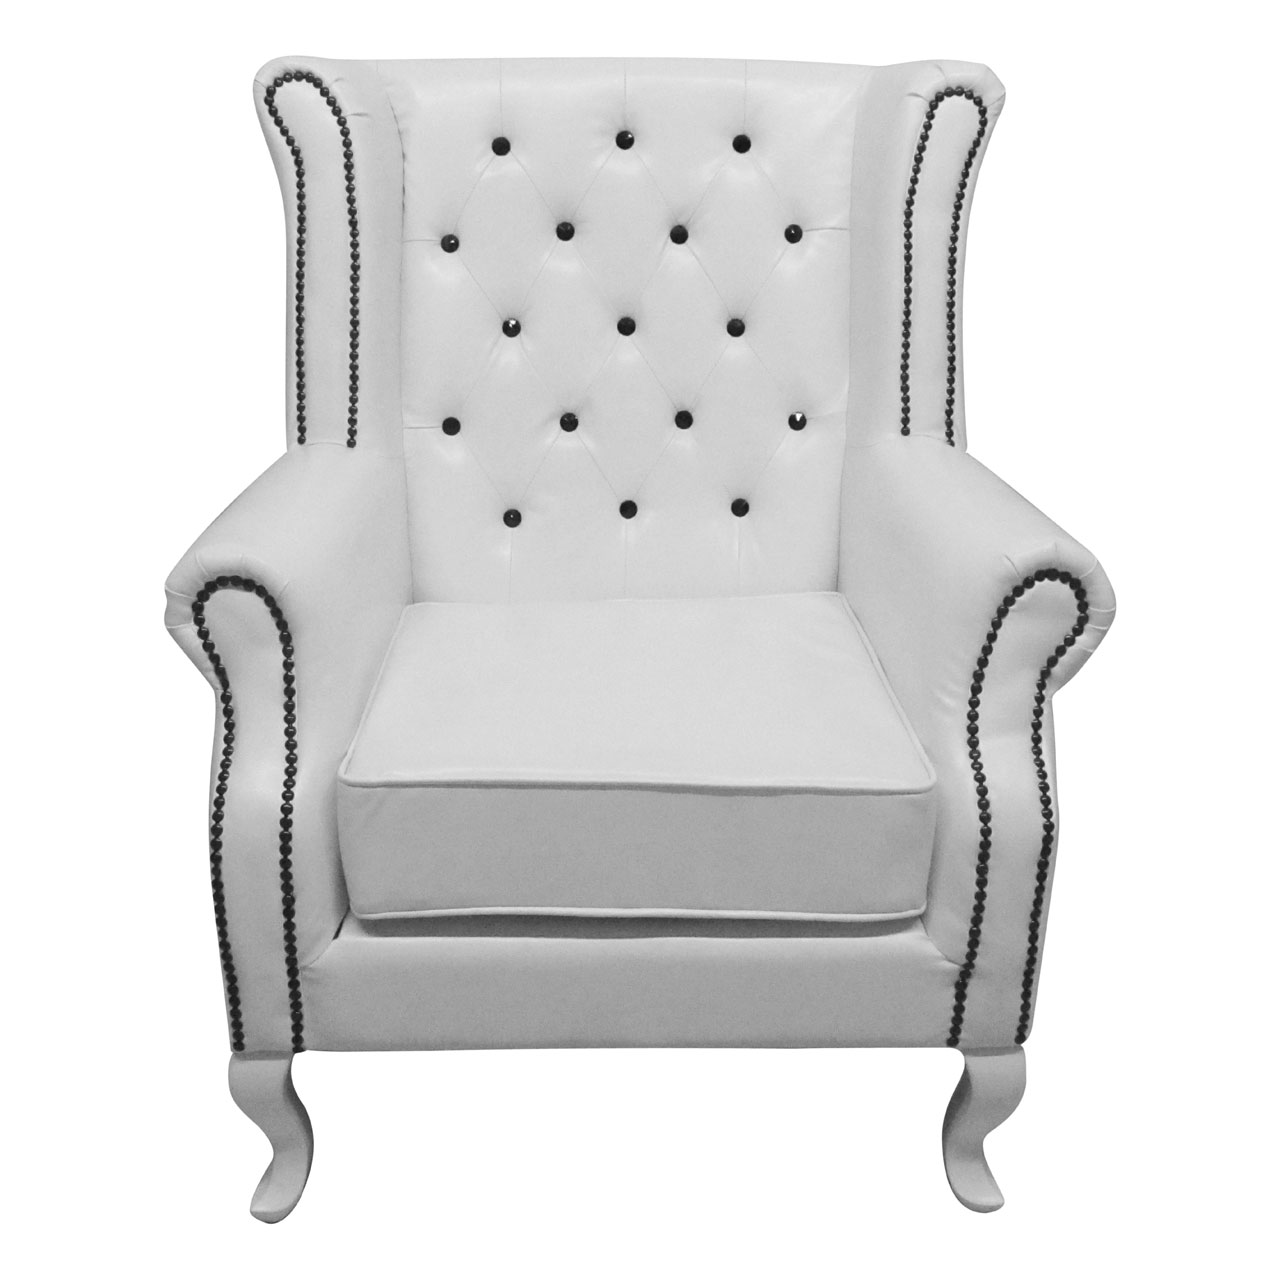 Details about chesterfield wing chair white leather black diamante